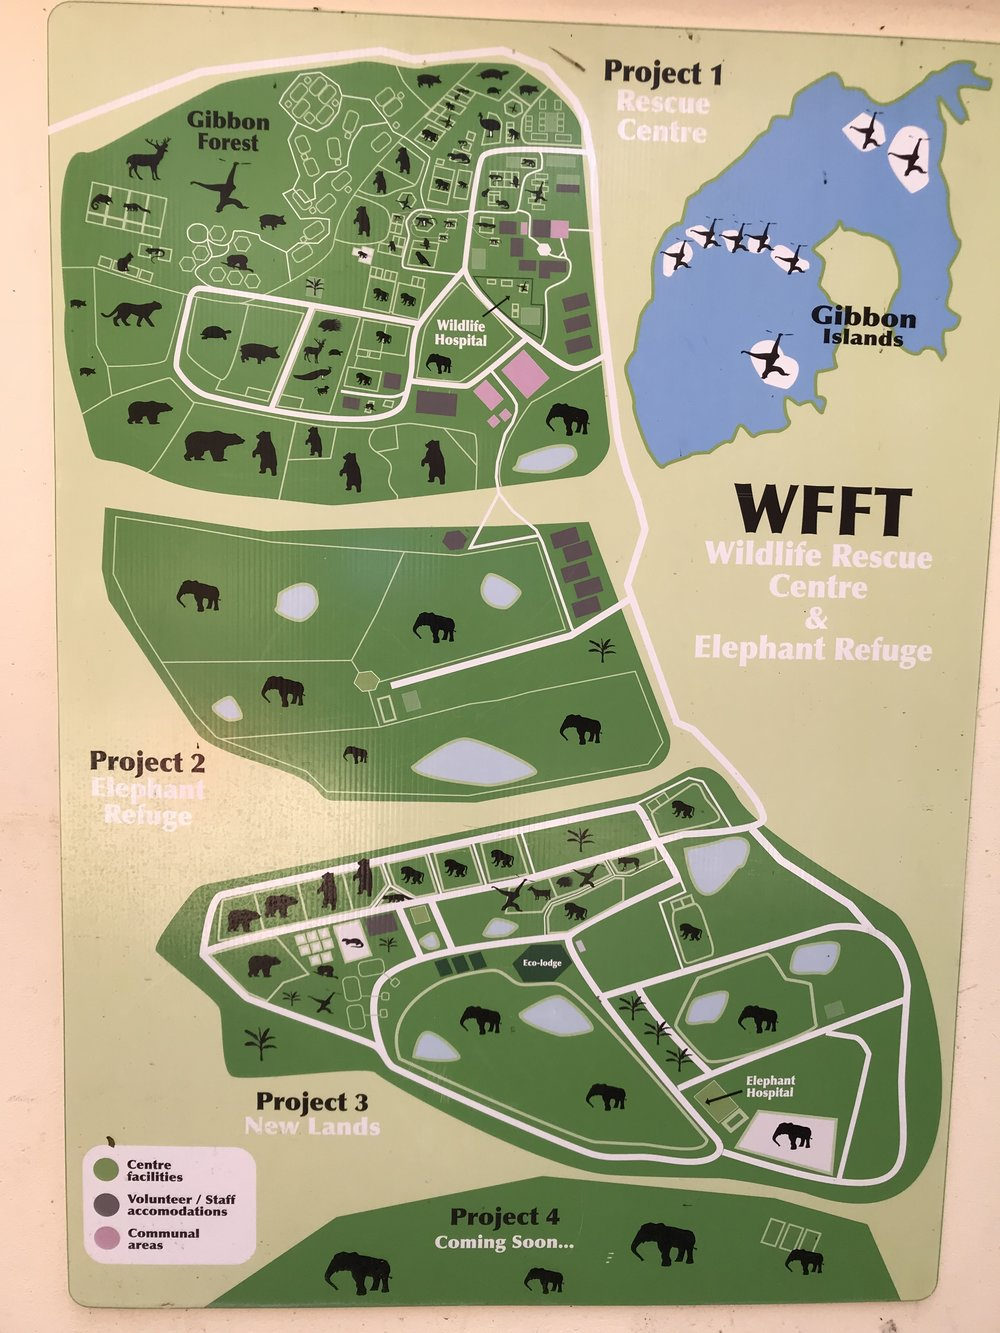 A map of Wildlife Friends Foundation Thailand